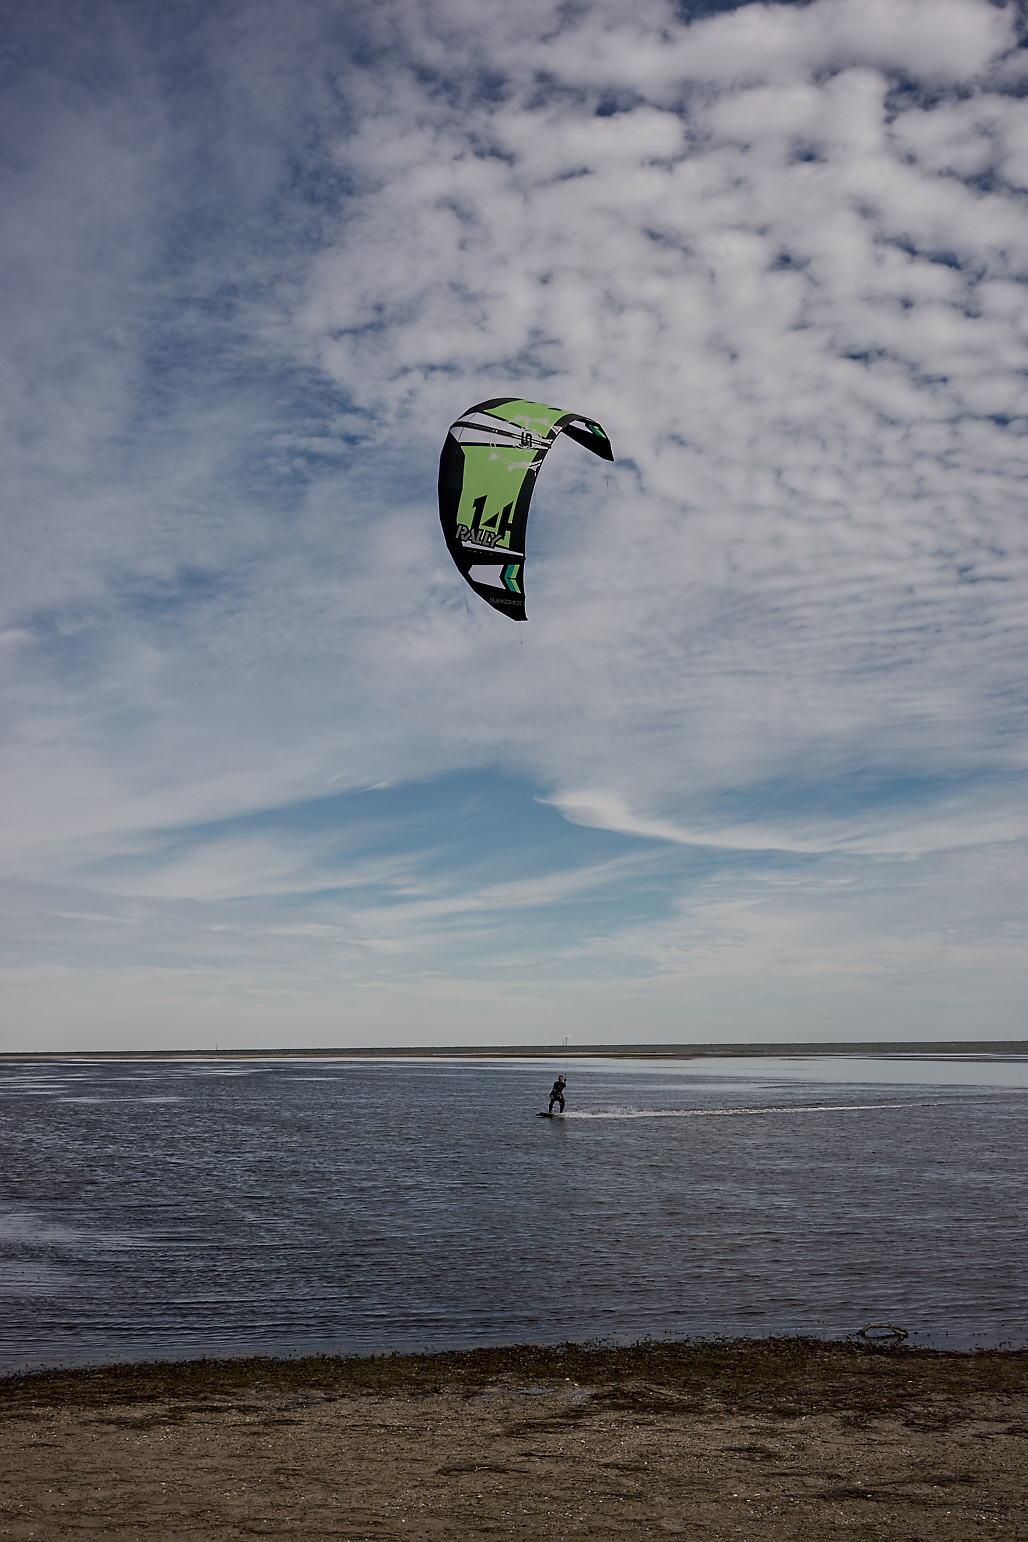 kitesurfing_kiteboarding_tampa_bay_florida_jose_romero_wordintown_DSC04045